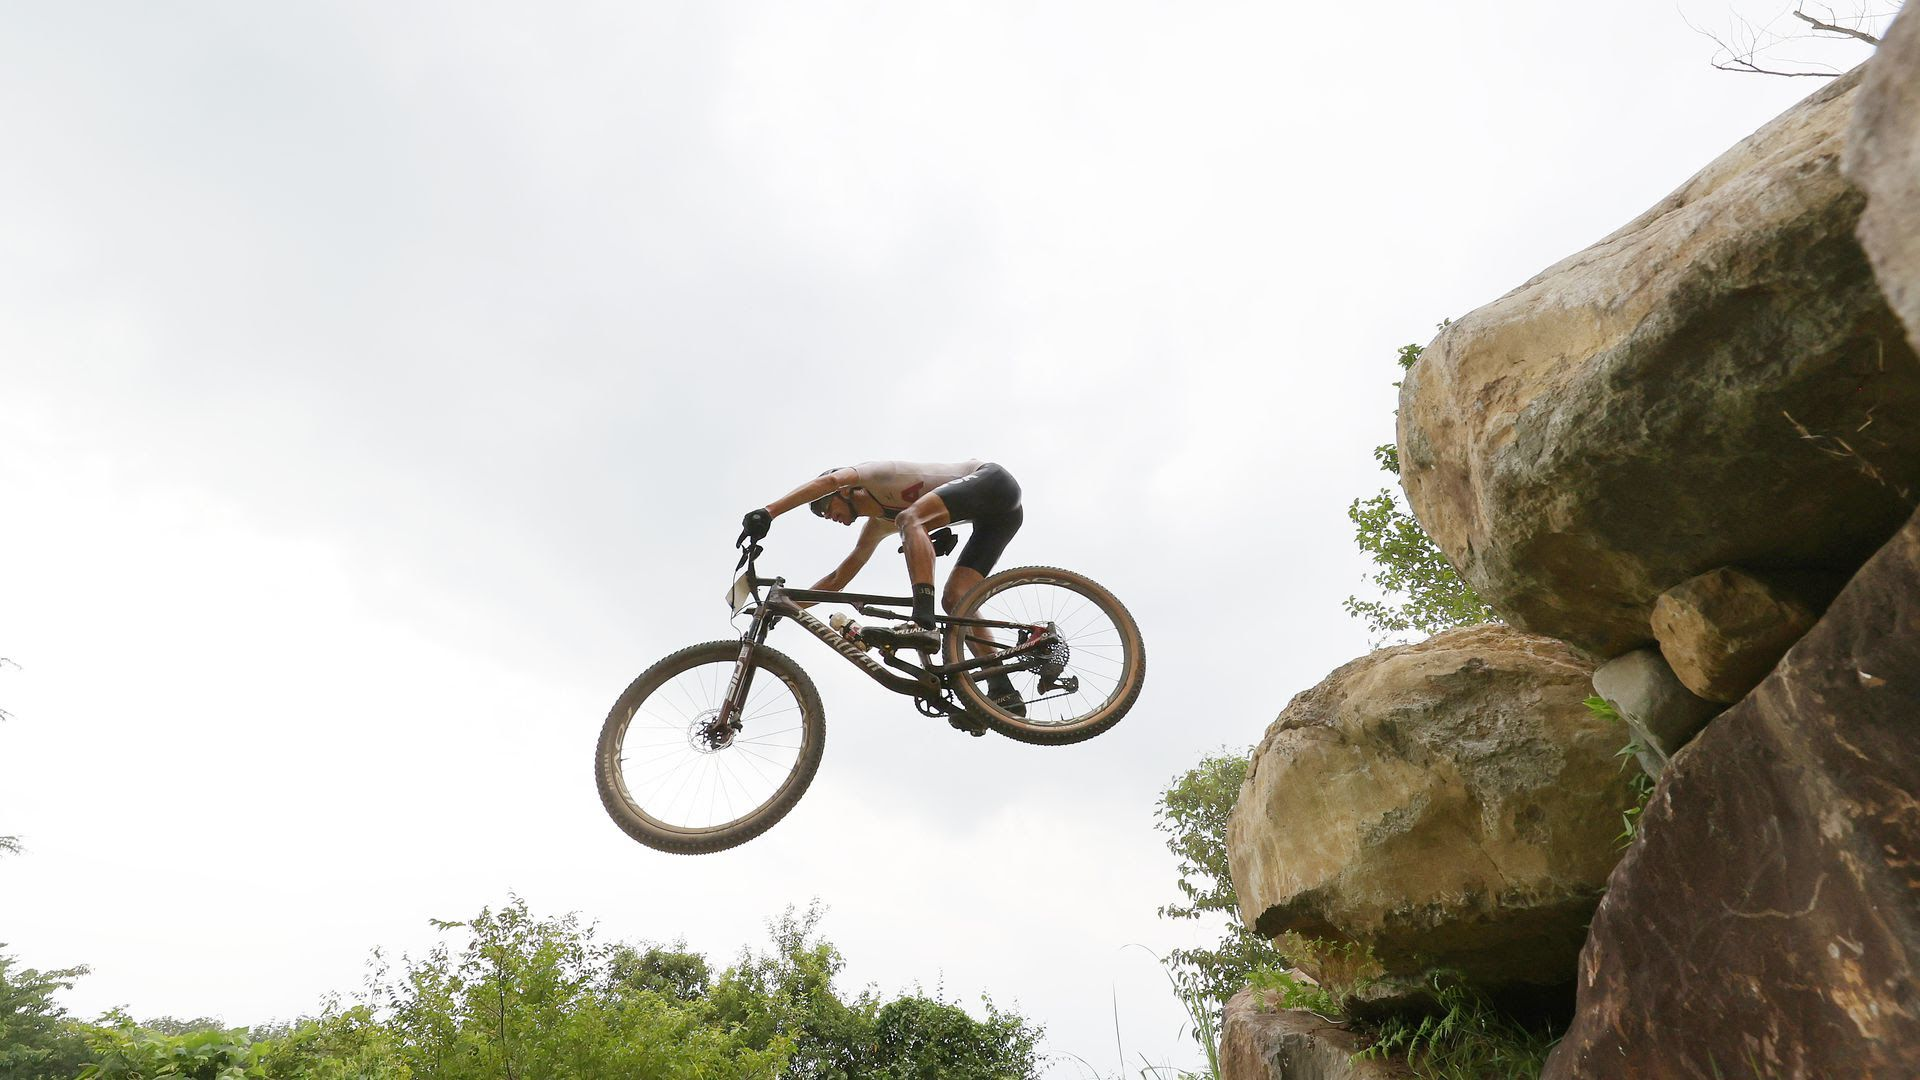 A mountain biker jumps in the air off rocks.